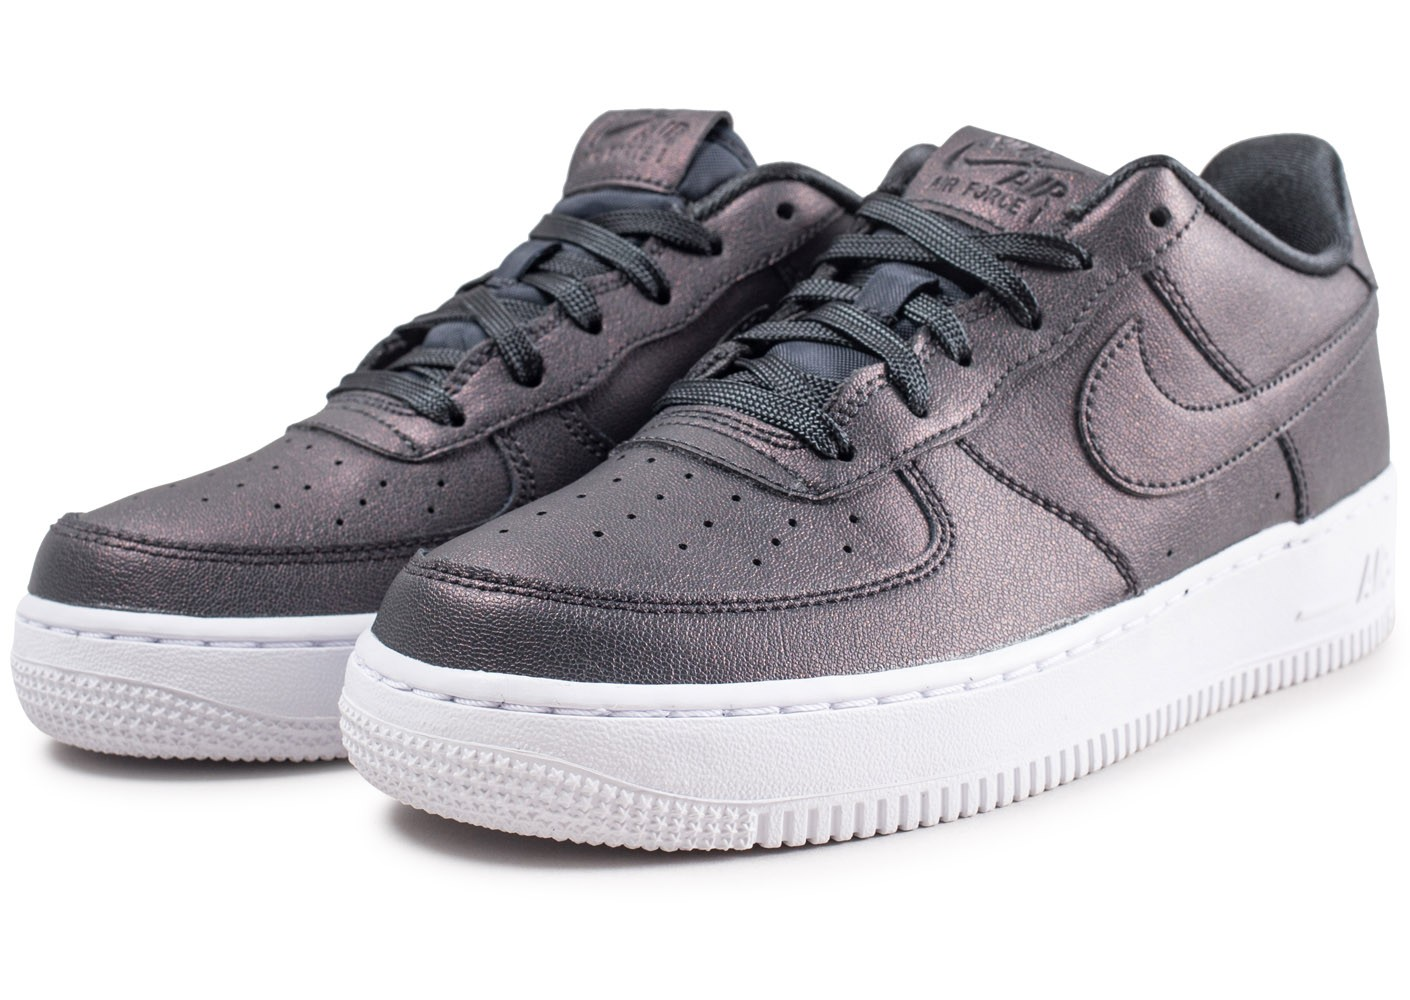 new arrival ffc52 35c6f ... Chaussures Nike Air Force 1 SS anthracite junior vue intérieure ...